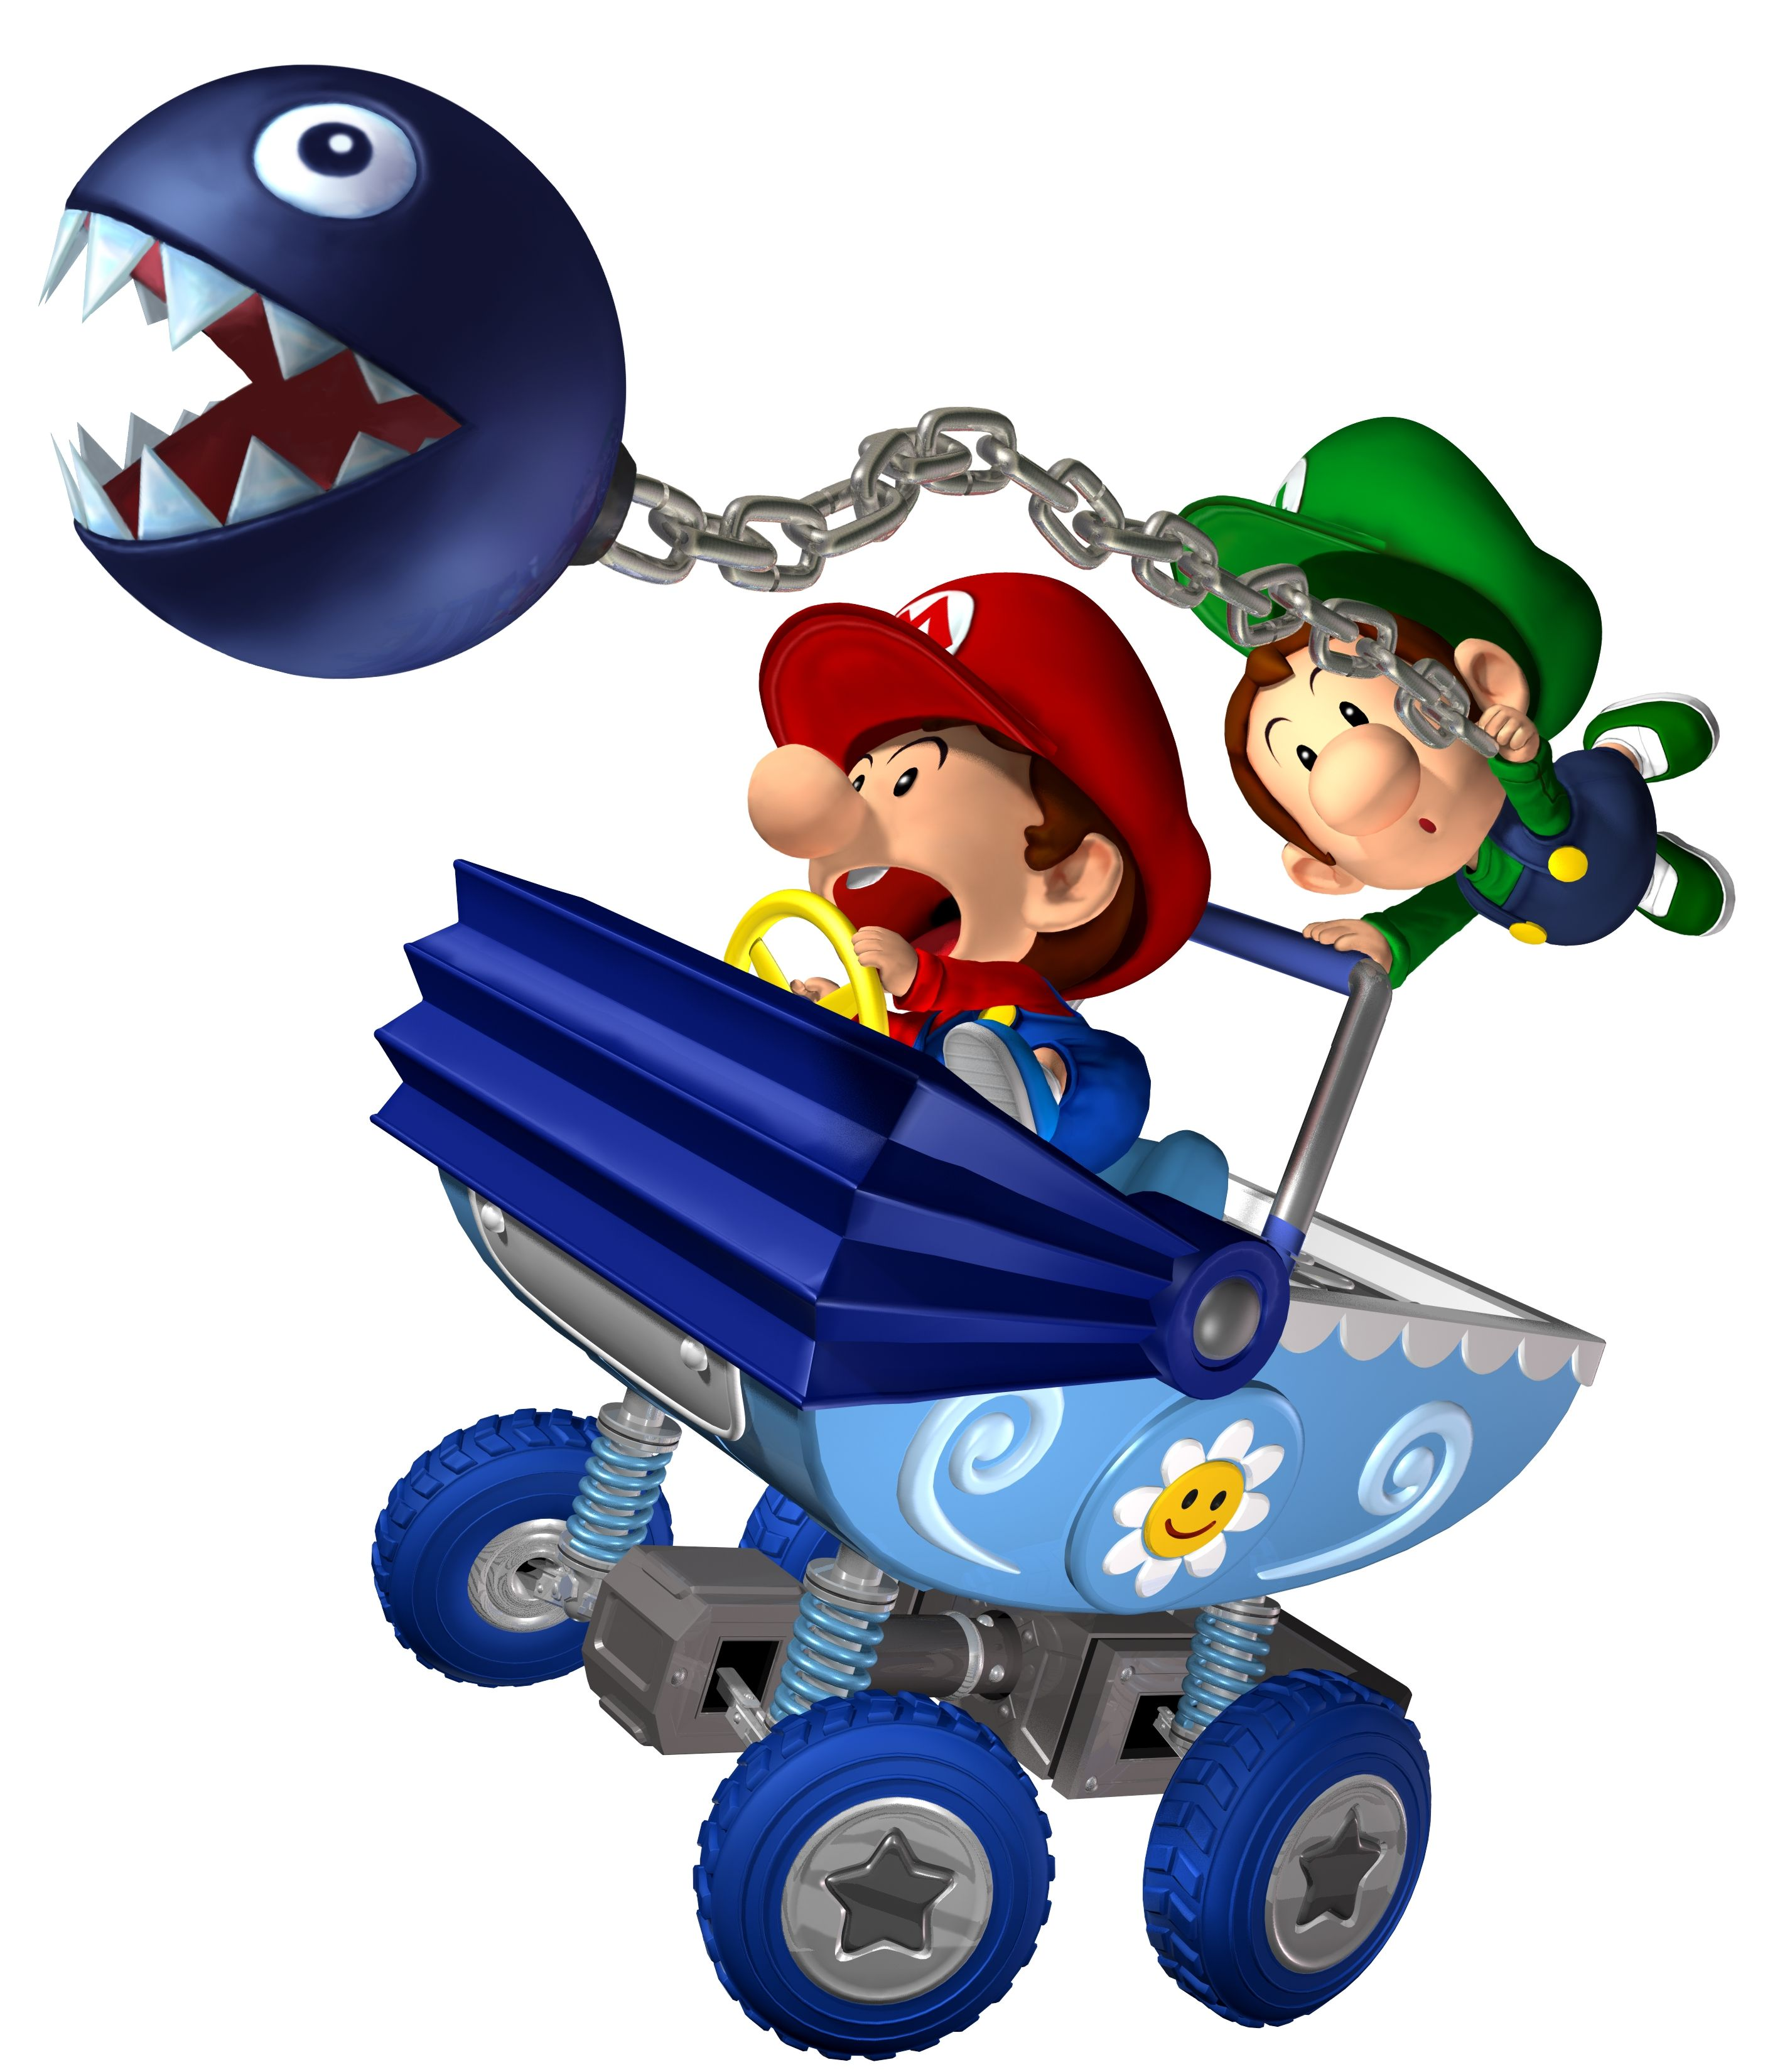 Assist Trophy Baby Mario And Luigi Anthony Higgs And Ayumi Tachibana Mario And Luigi Mario Luigi